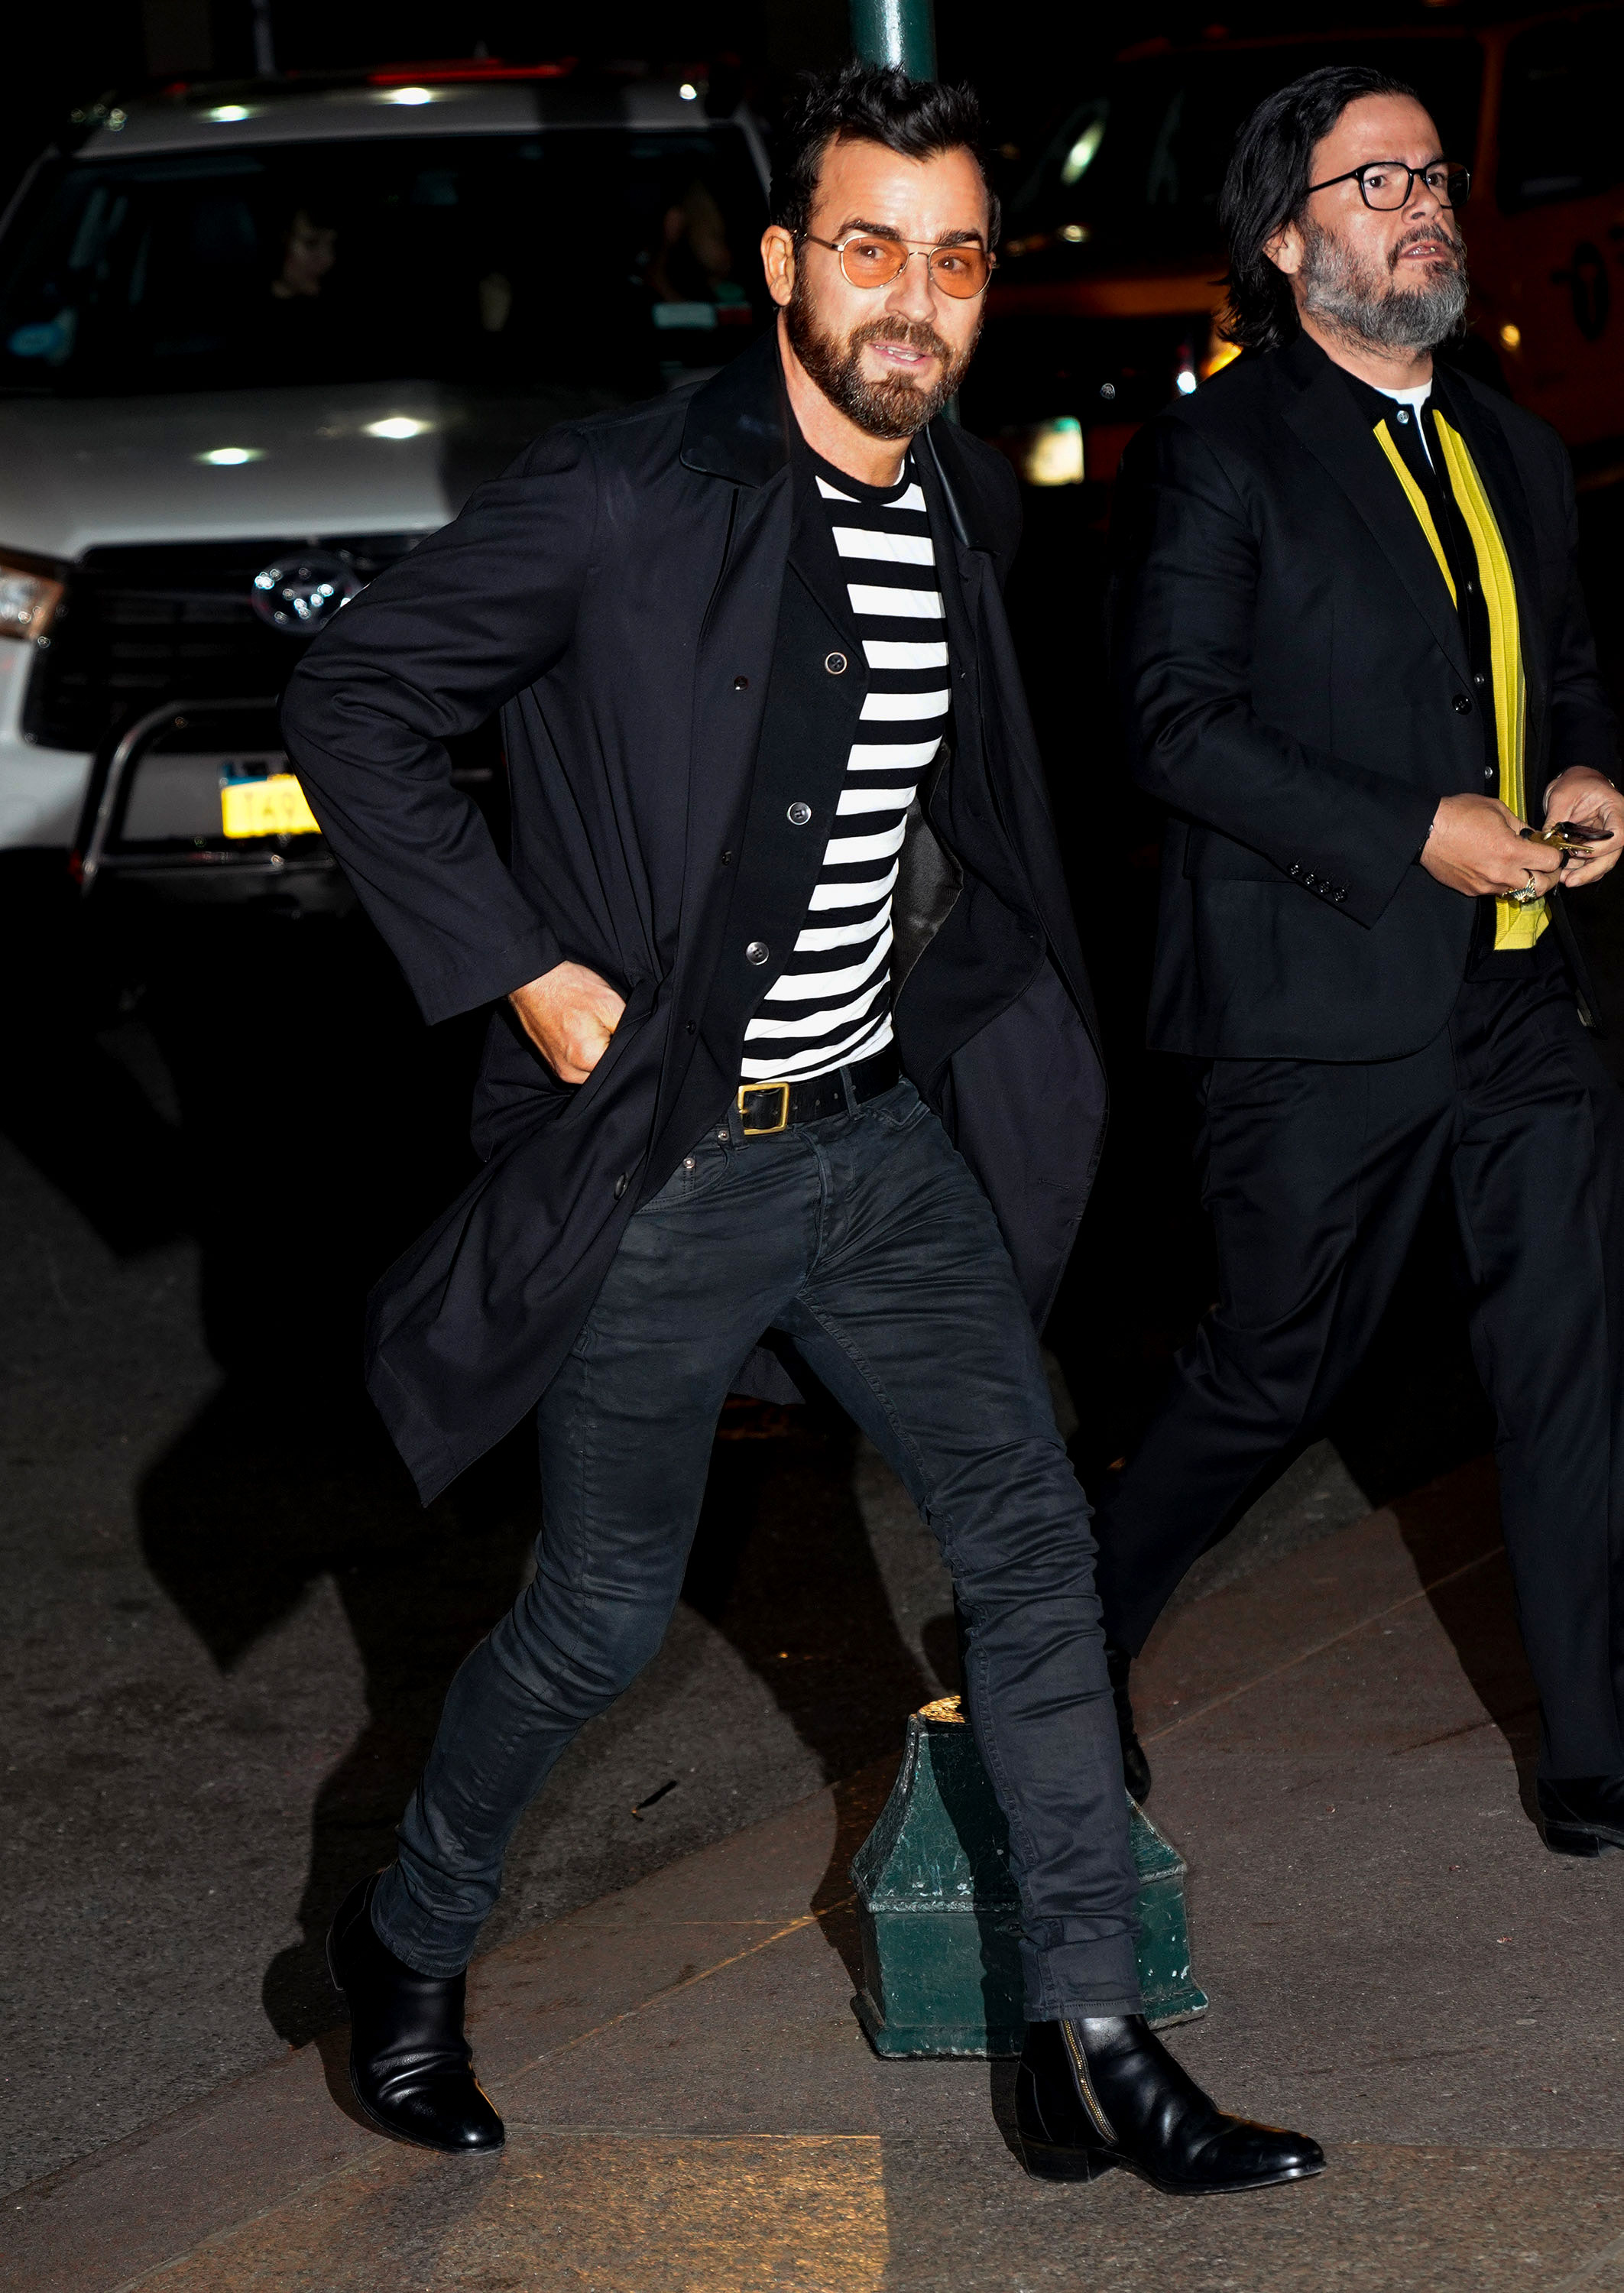 Marc-Jacob-and-Char-DeFrancesco-wedding-reception Justin Theroux - Theroux looked dapper in a black jacket that he paired with a striped shirt as he arrived at the reception.